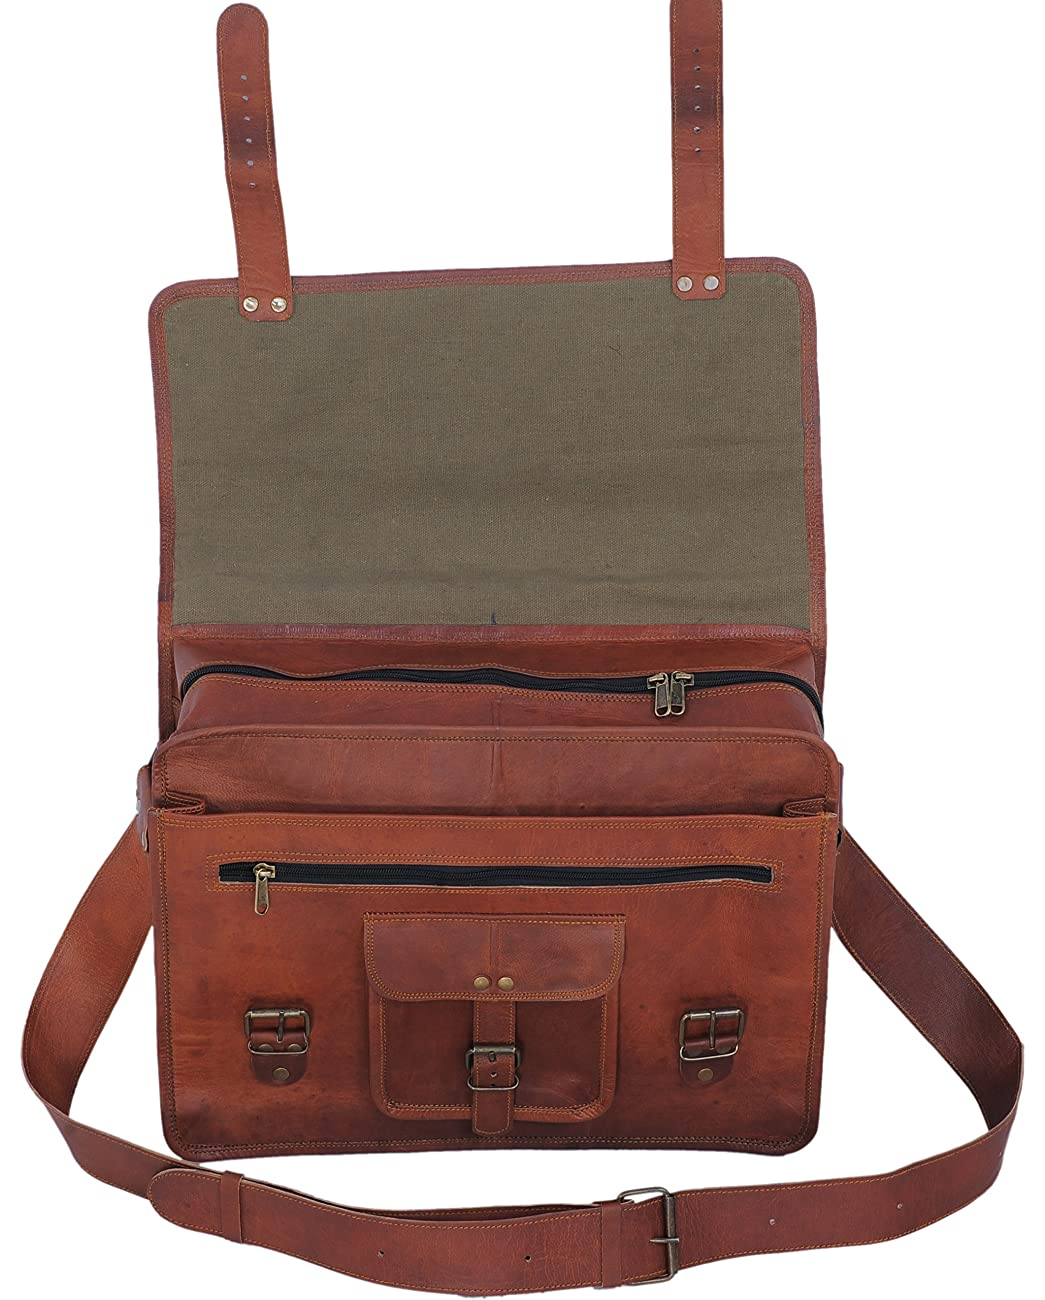 PL 16 Inch Vintage Leather Messenger Bag Briefcase / Fits upto 15.6 Inch Laptop 2